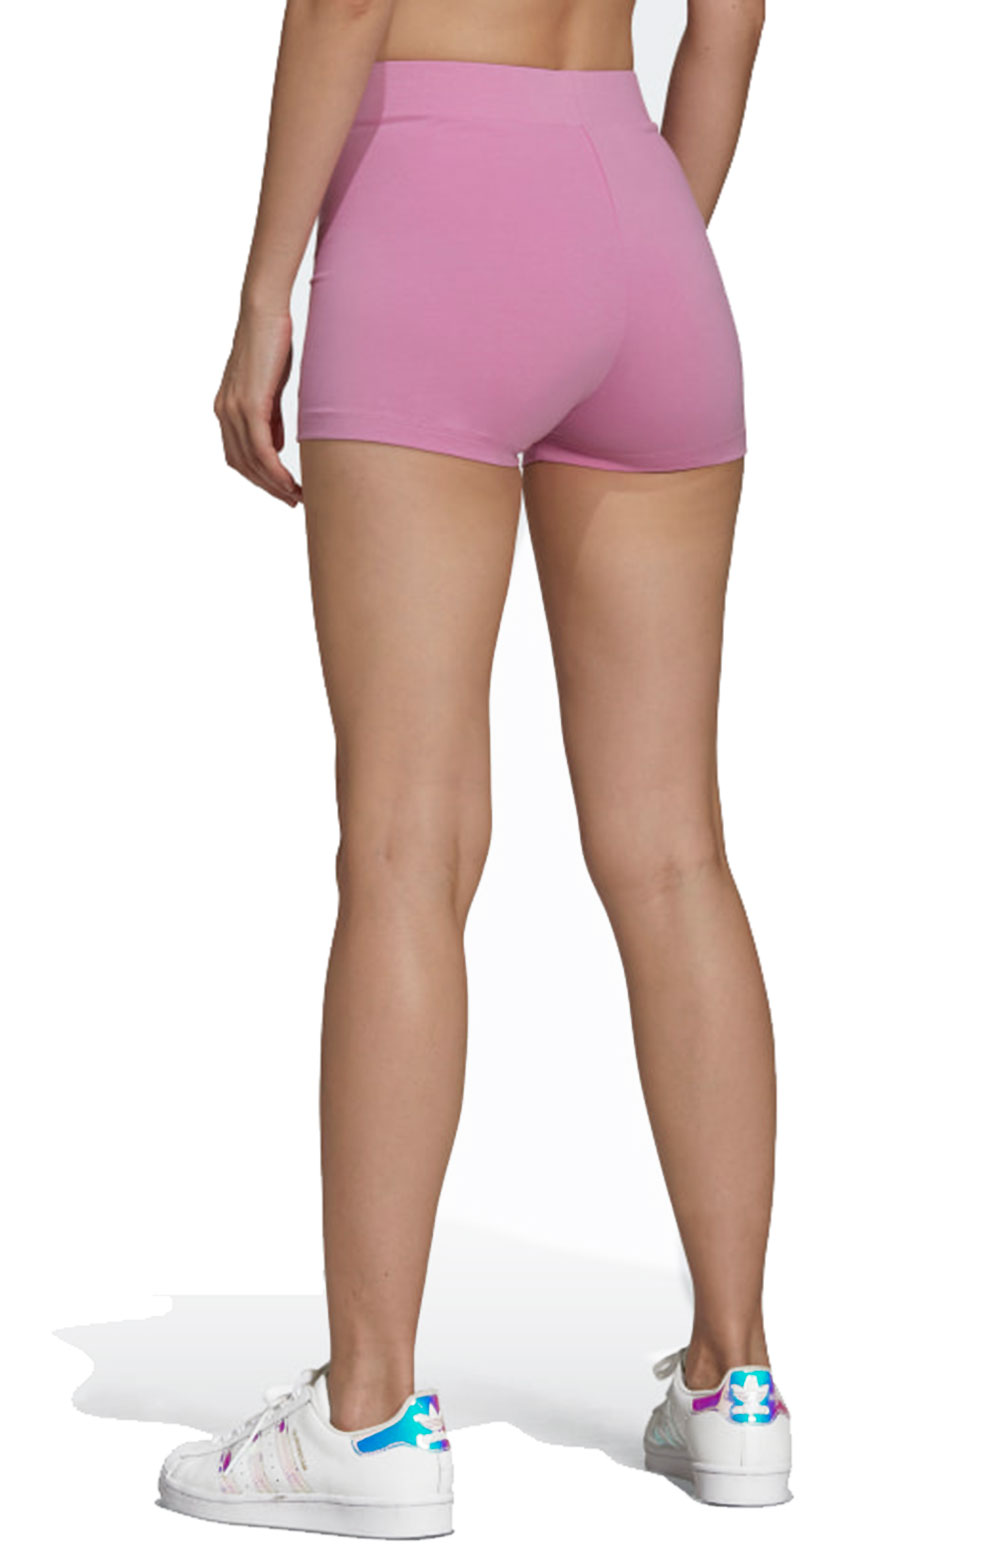 (HF9203) 2000 Luxe Shorts - Bliss Orchid  3